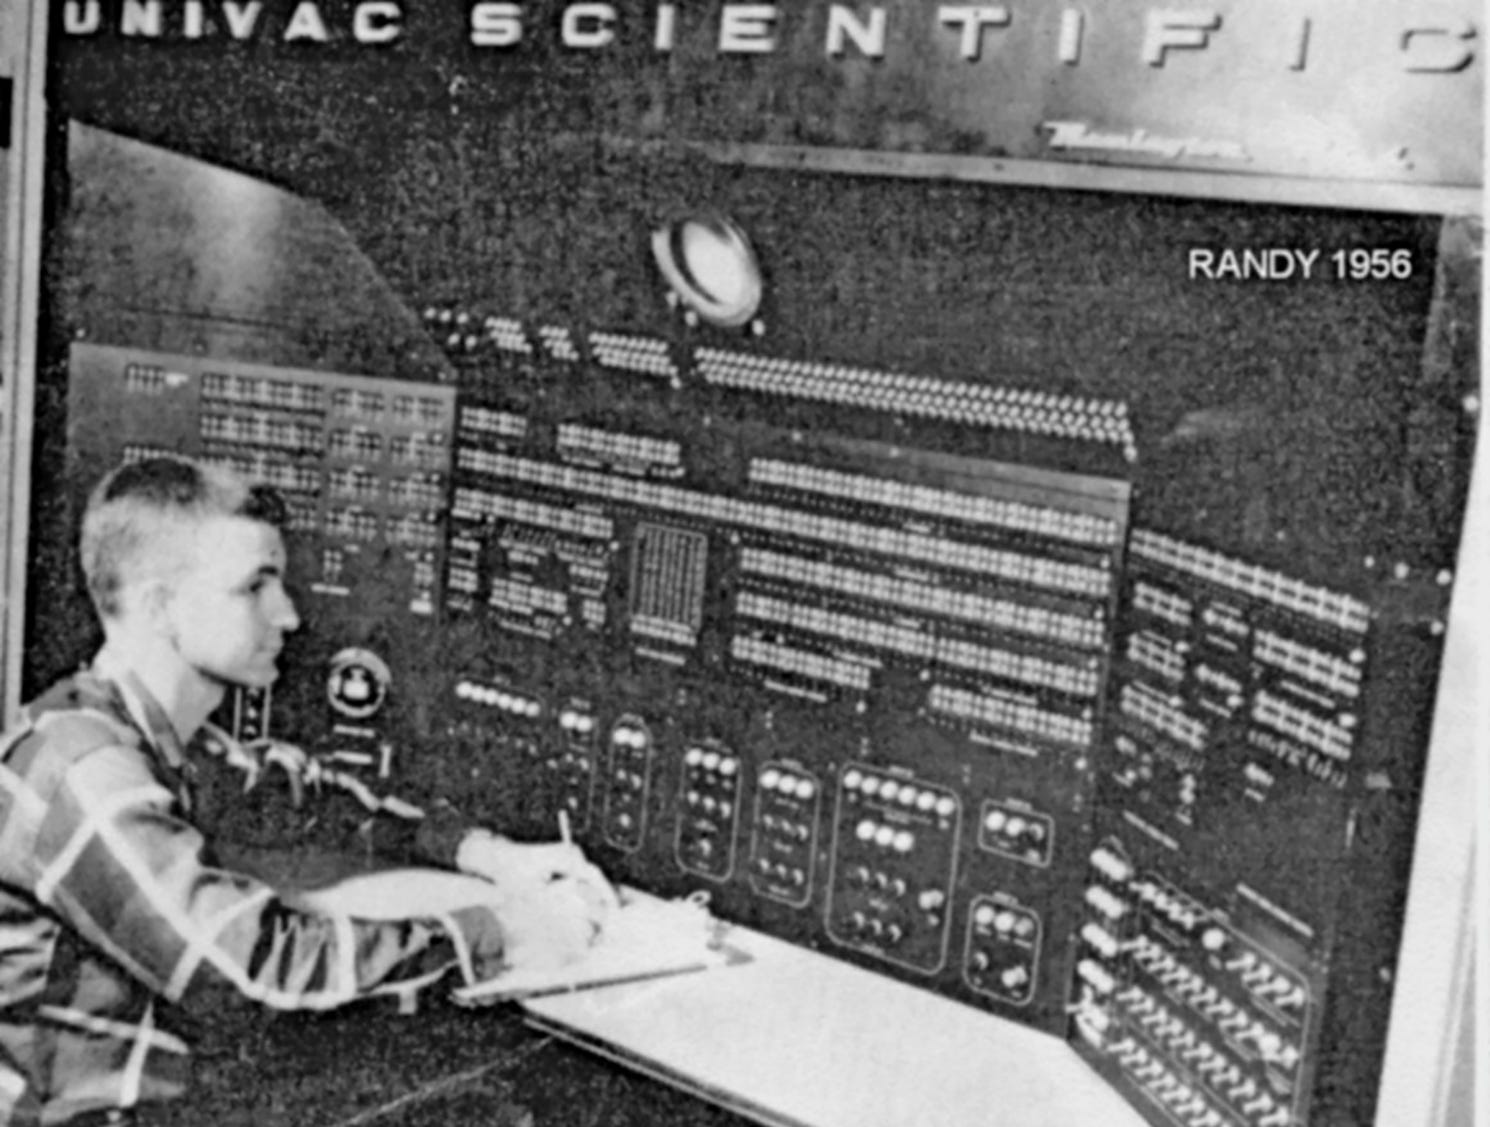 Randy Gilmore at the console of a Univac mainframe computer in 1956. The southern tip of Marco Island's beach spent years during the Cold War as a missile tracking station administered by the Air Force. Photo courtesy of Randy Gilmore